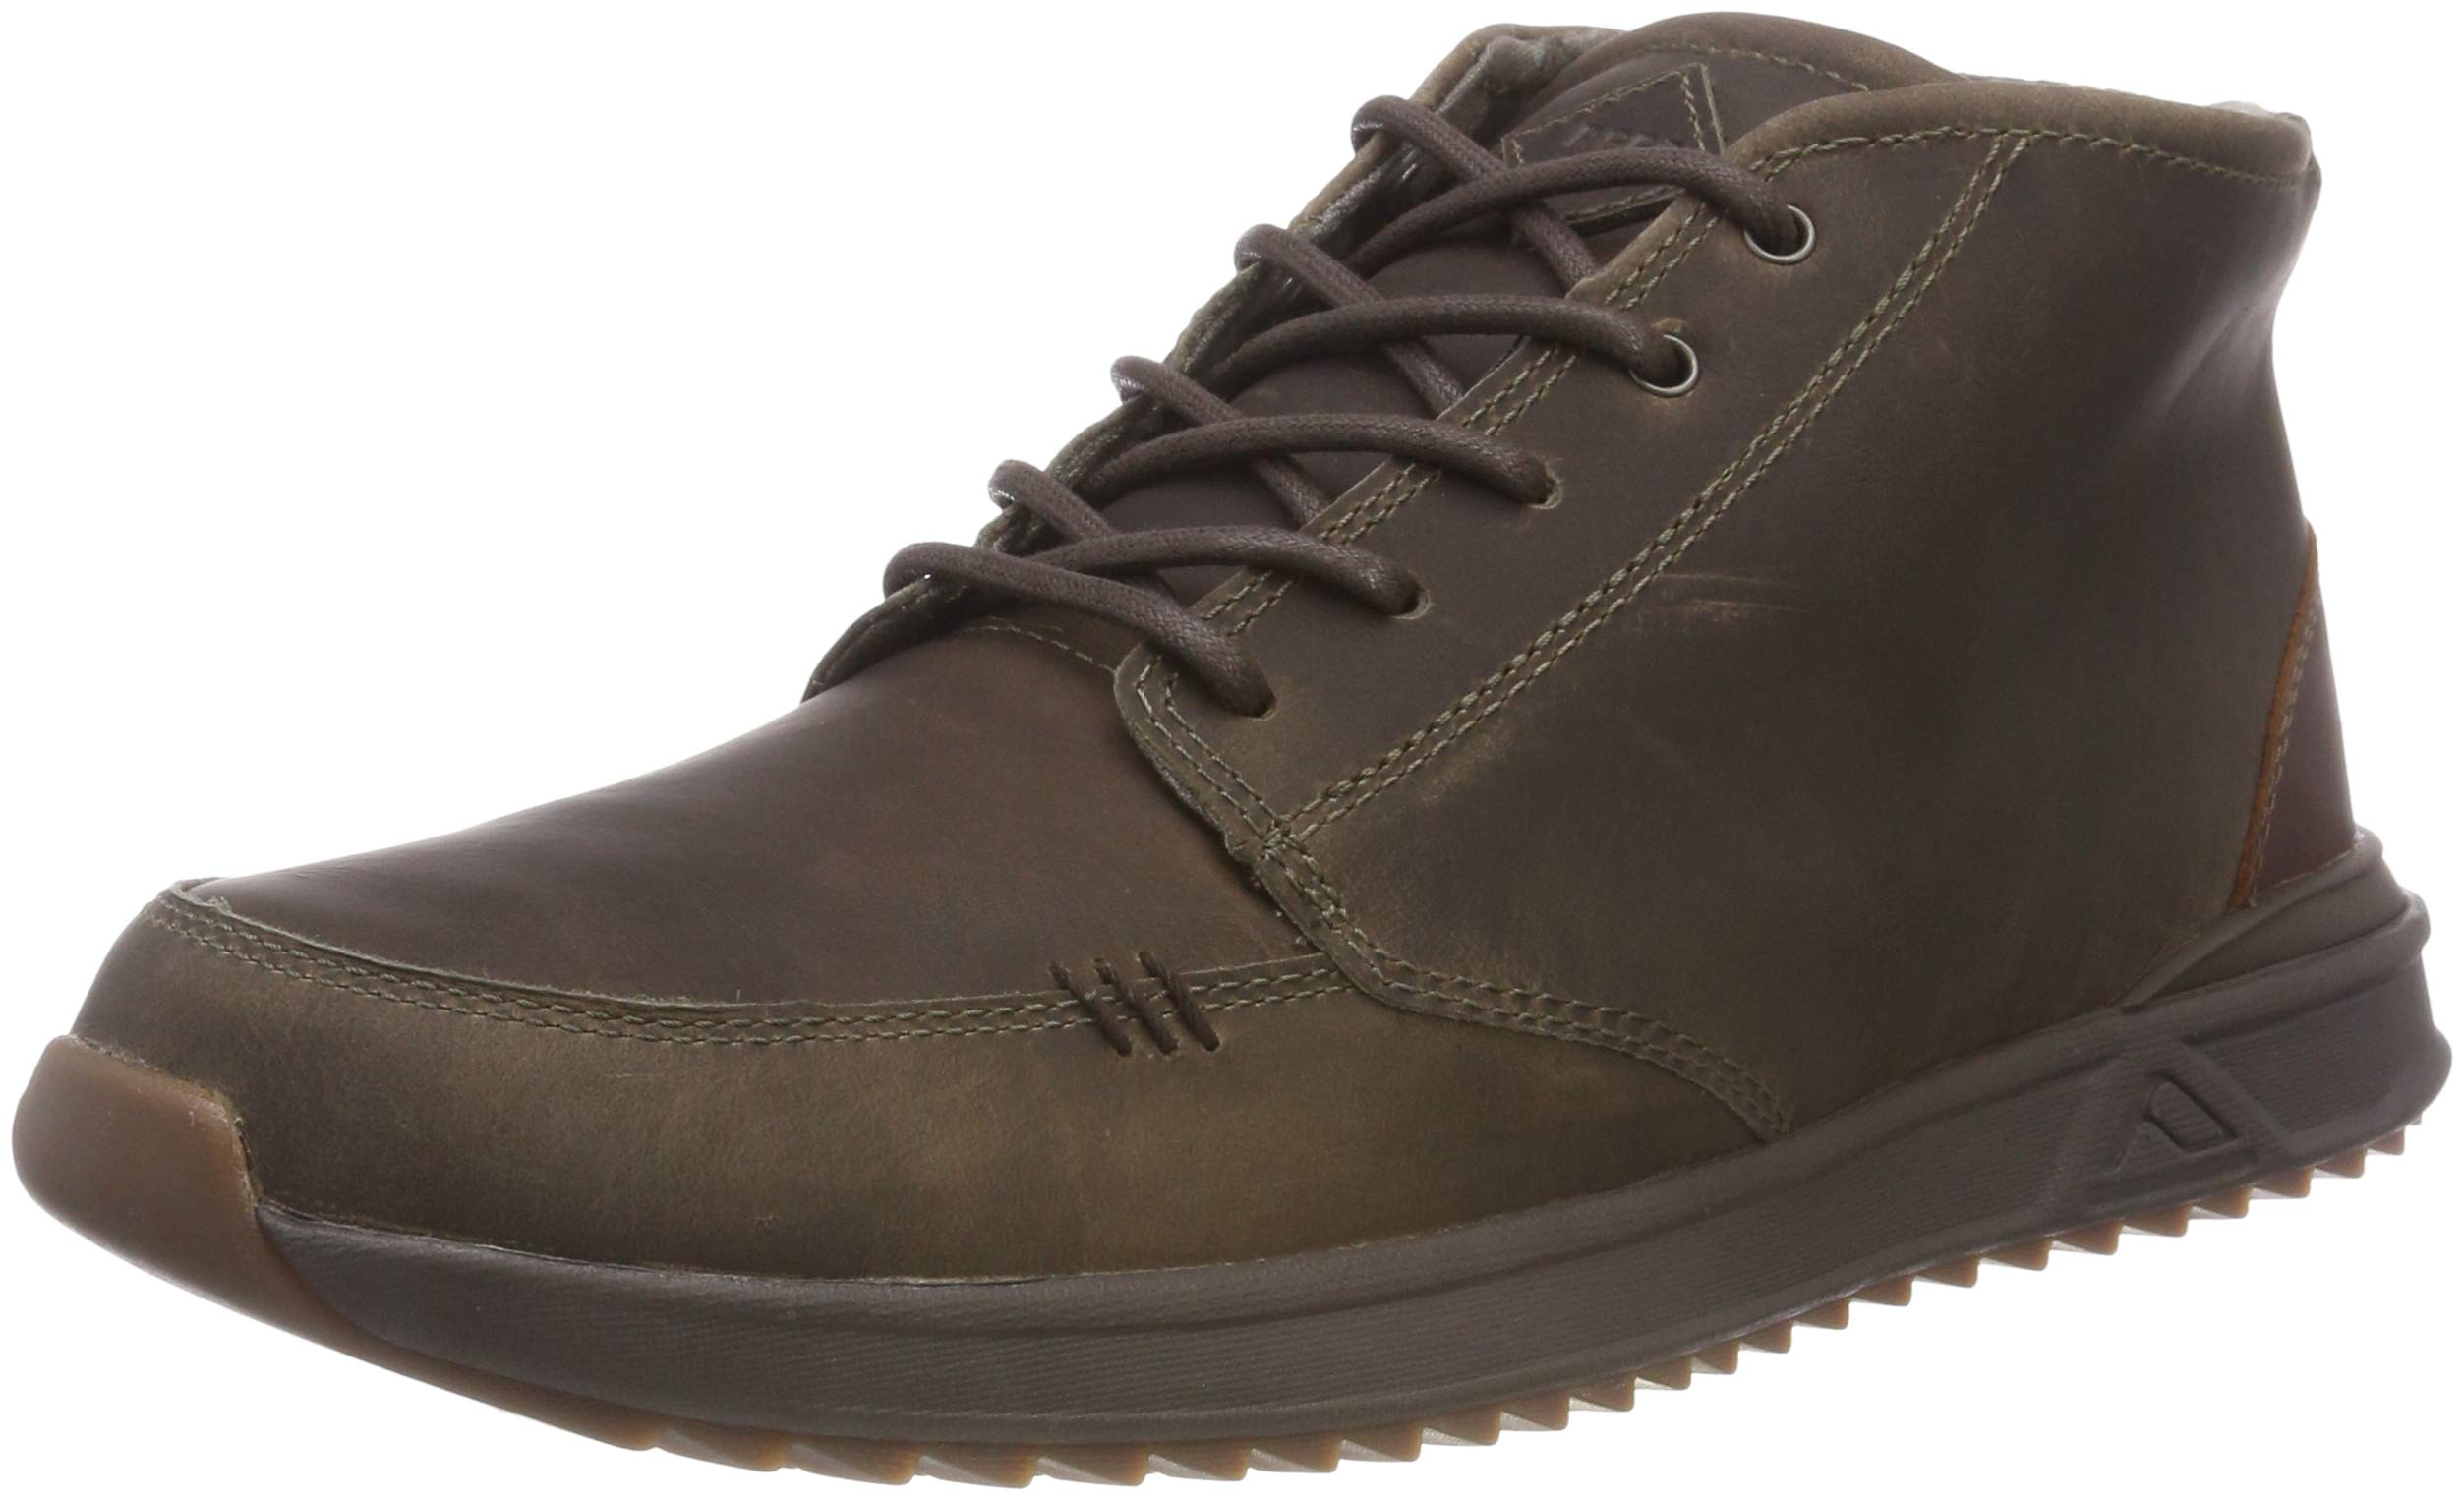 Eu Classiques Sle44 5 Mid WtBottesamp; Rover Reef Bottines HommeGrisslate H2YED9IWeb